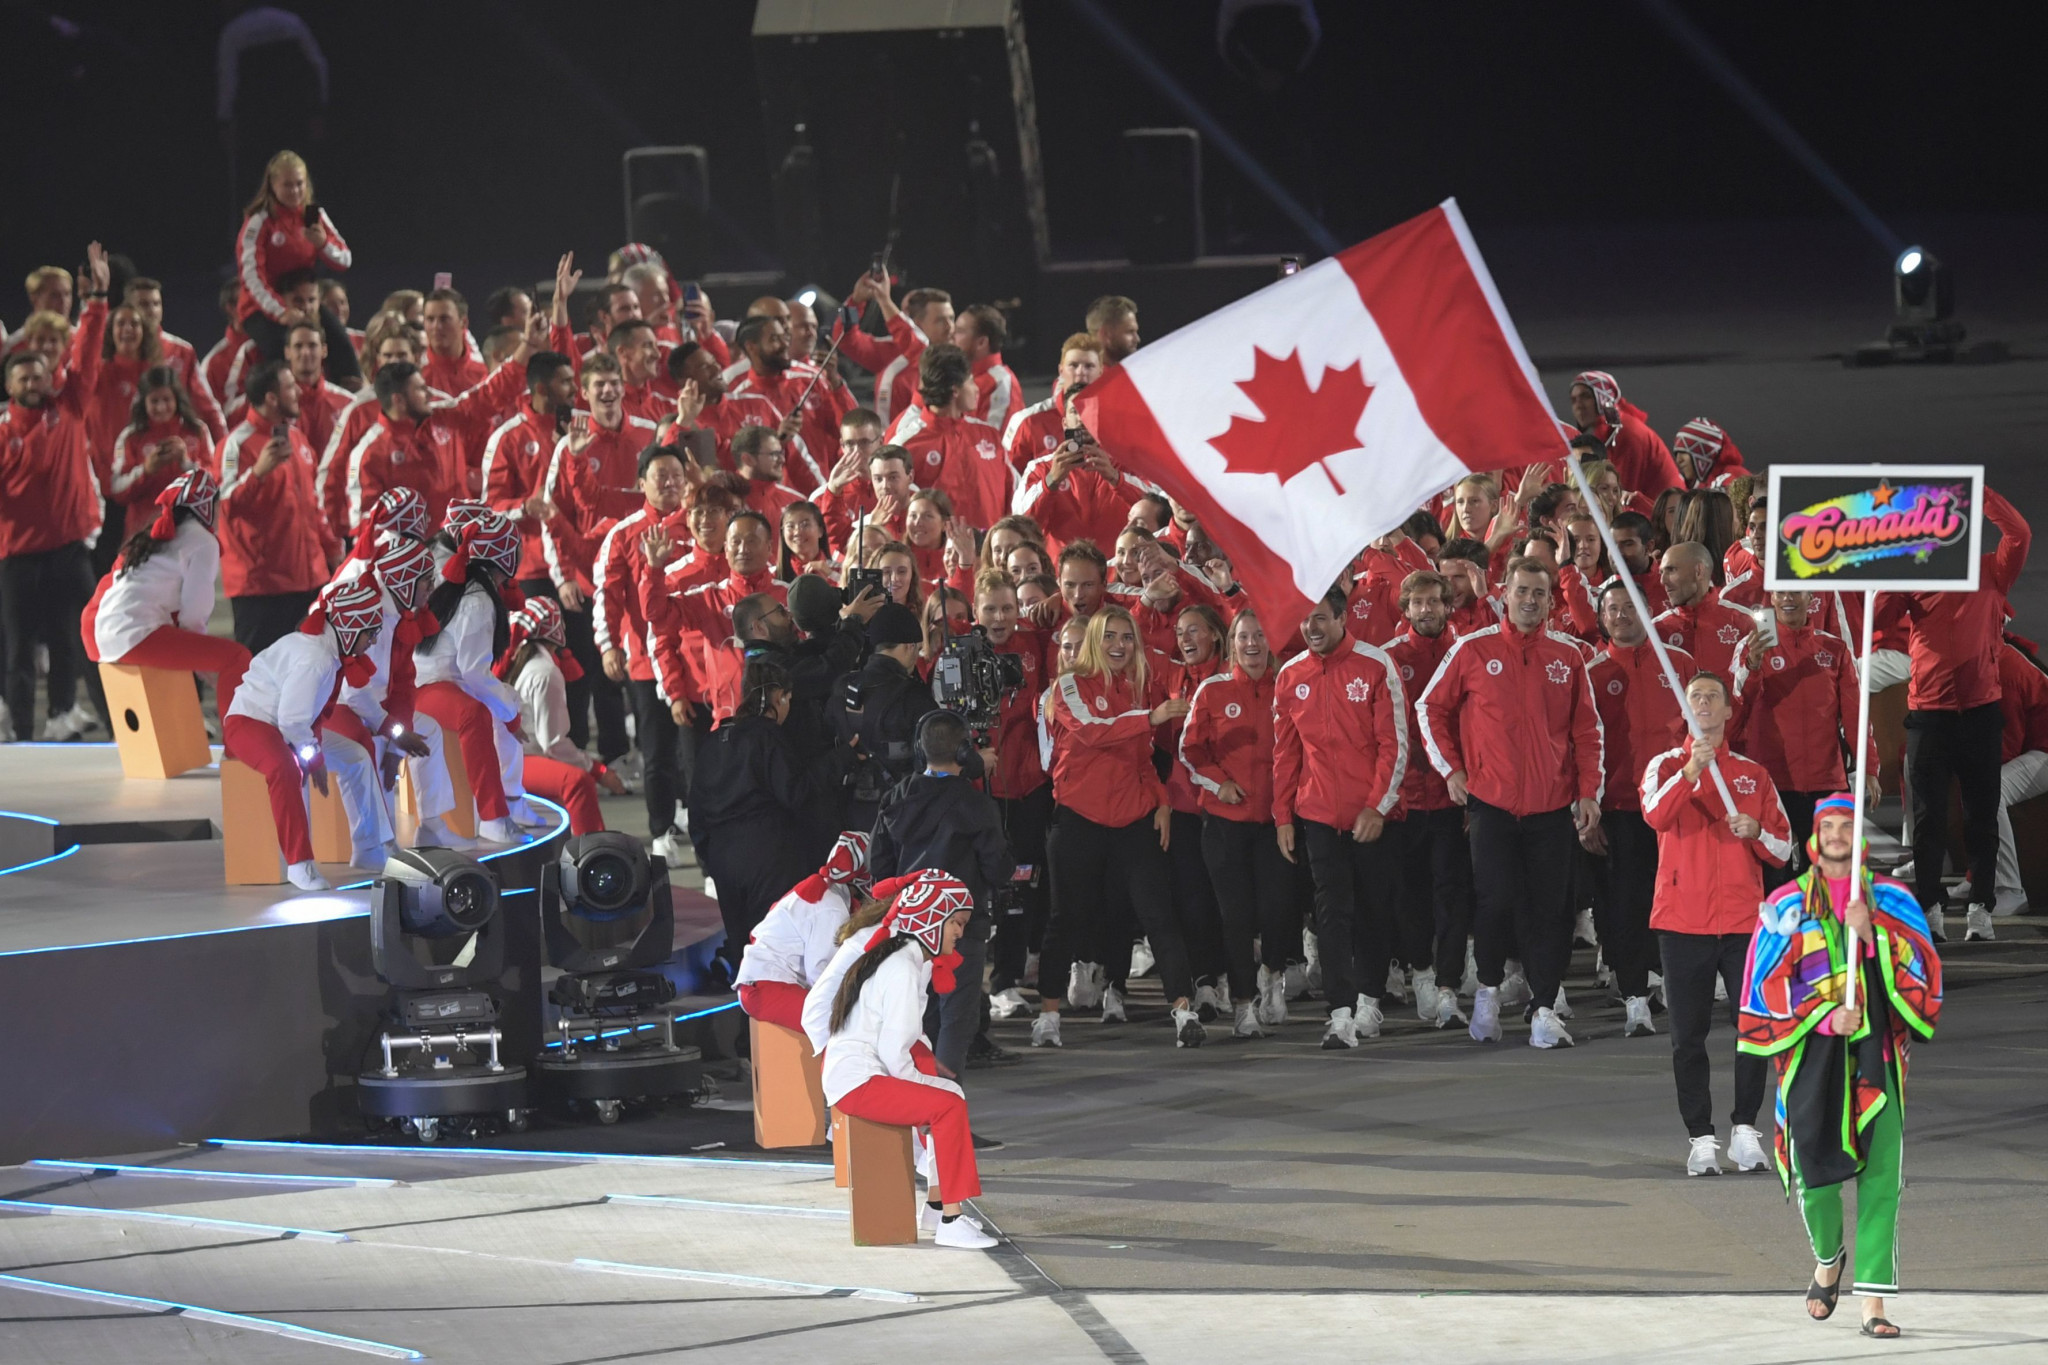 Canada the latest country to relax Rule 40 guidelines in time for Tokyo 2020